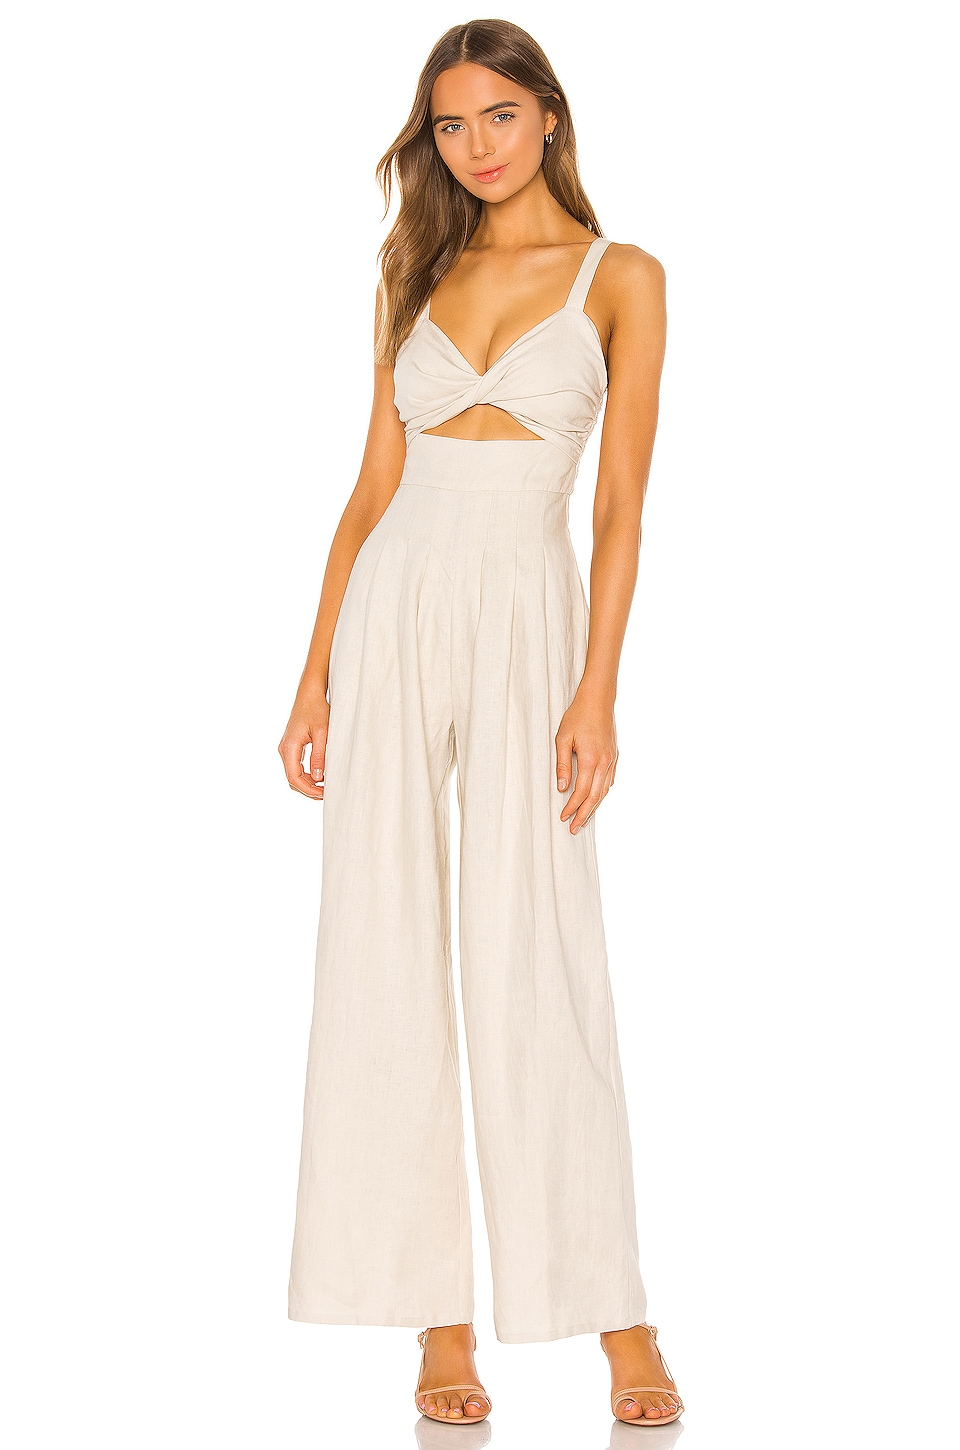 Song of Style James Jumpsuit in Sandstone Beige